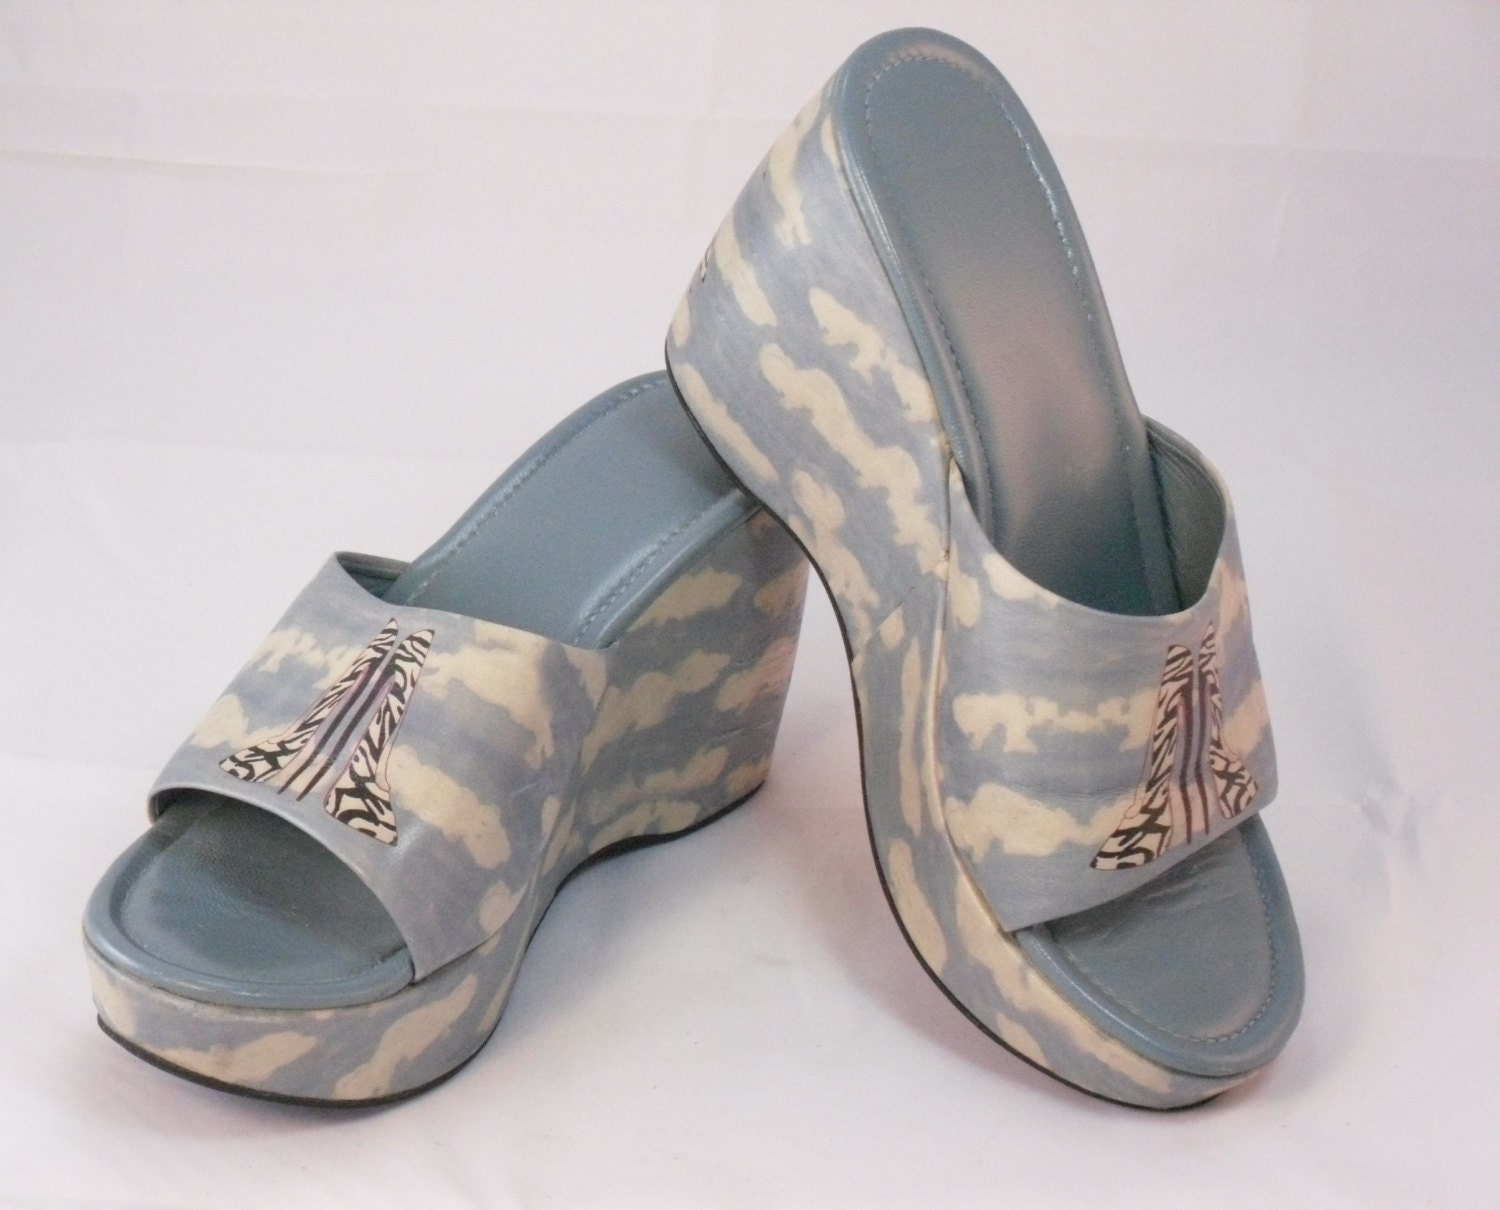 Popular items for 80s womens shoes